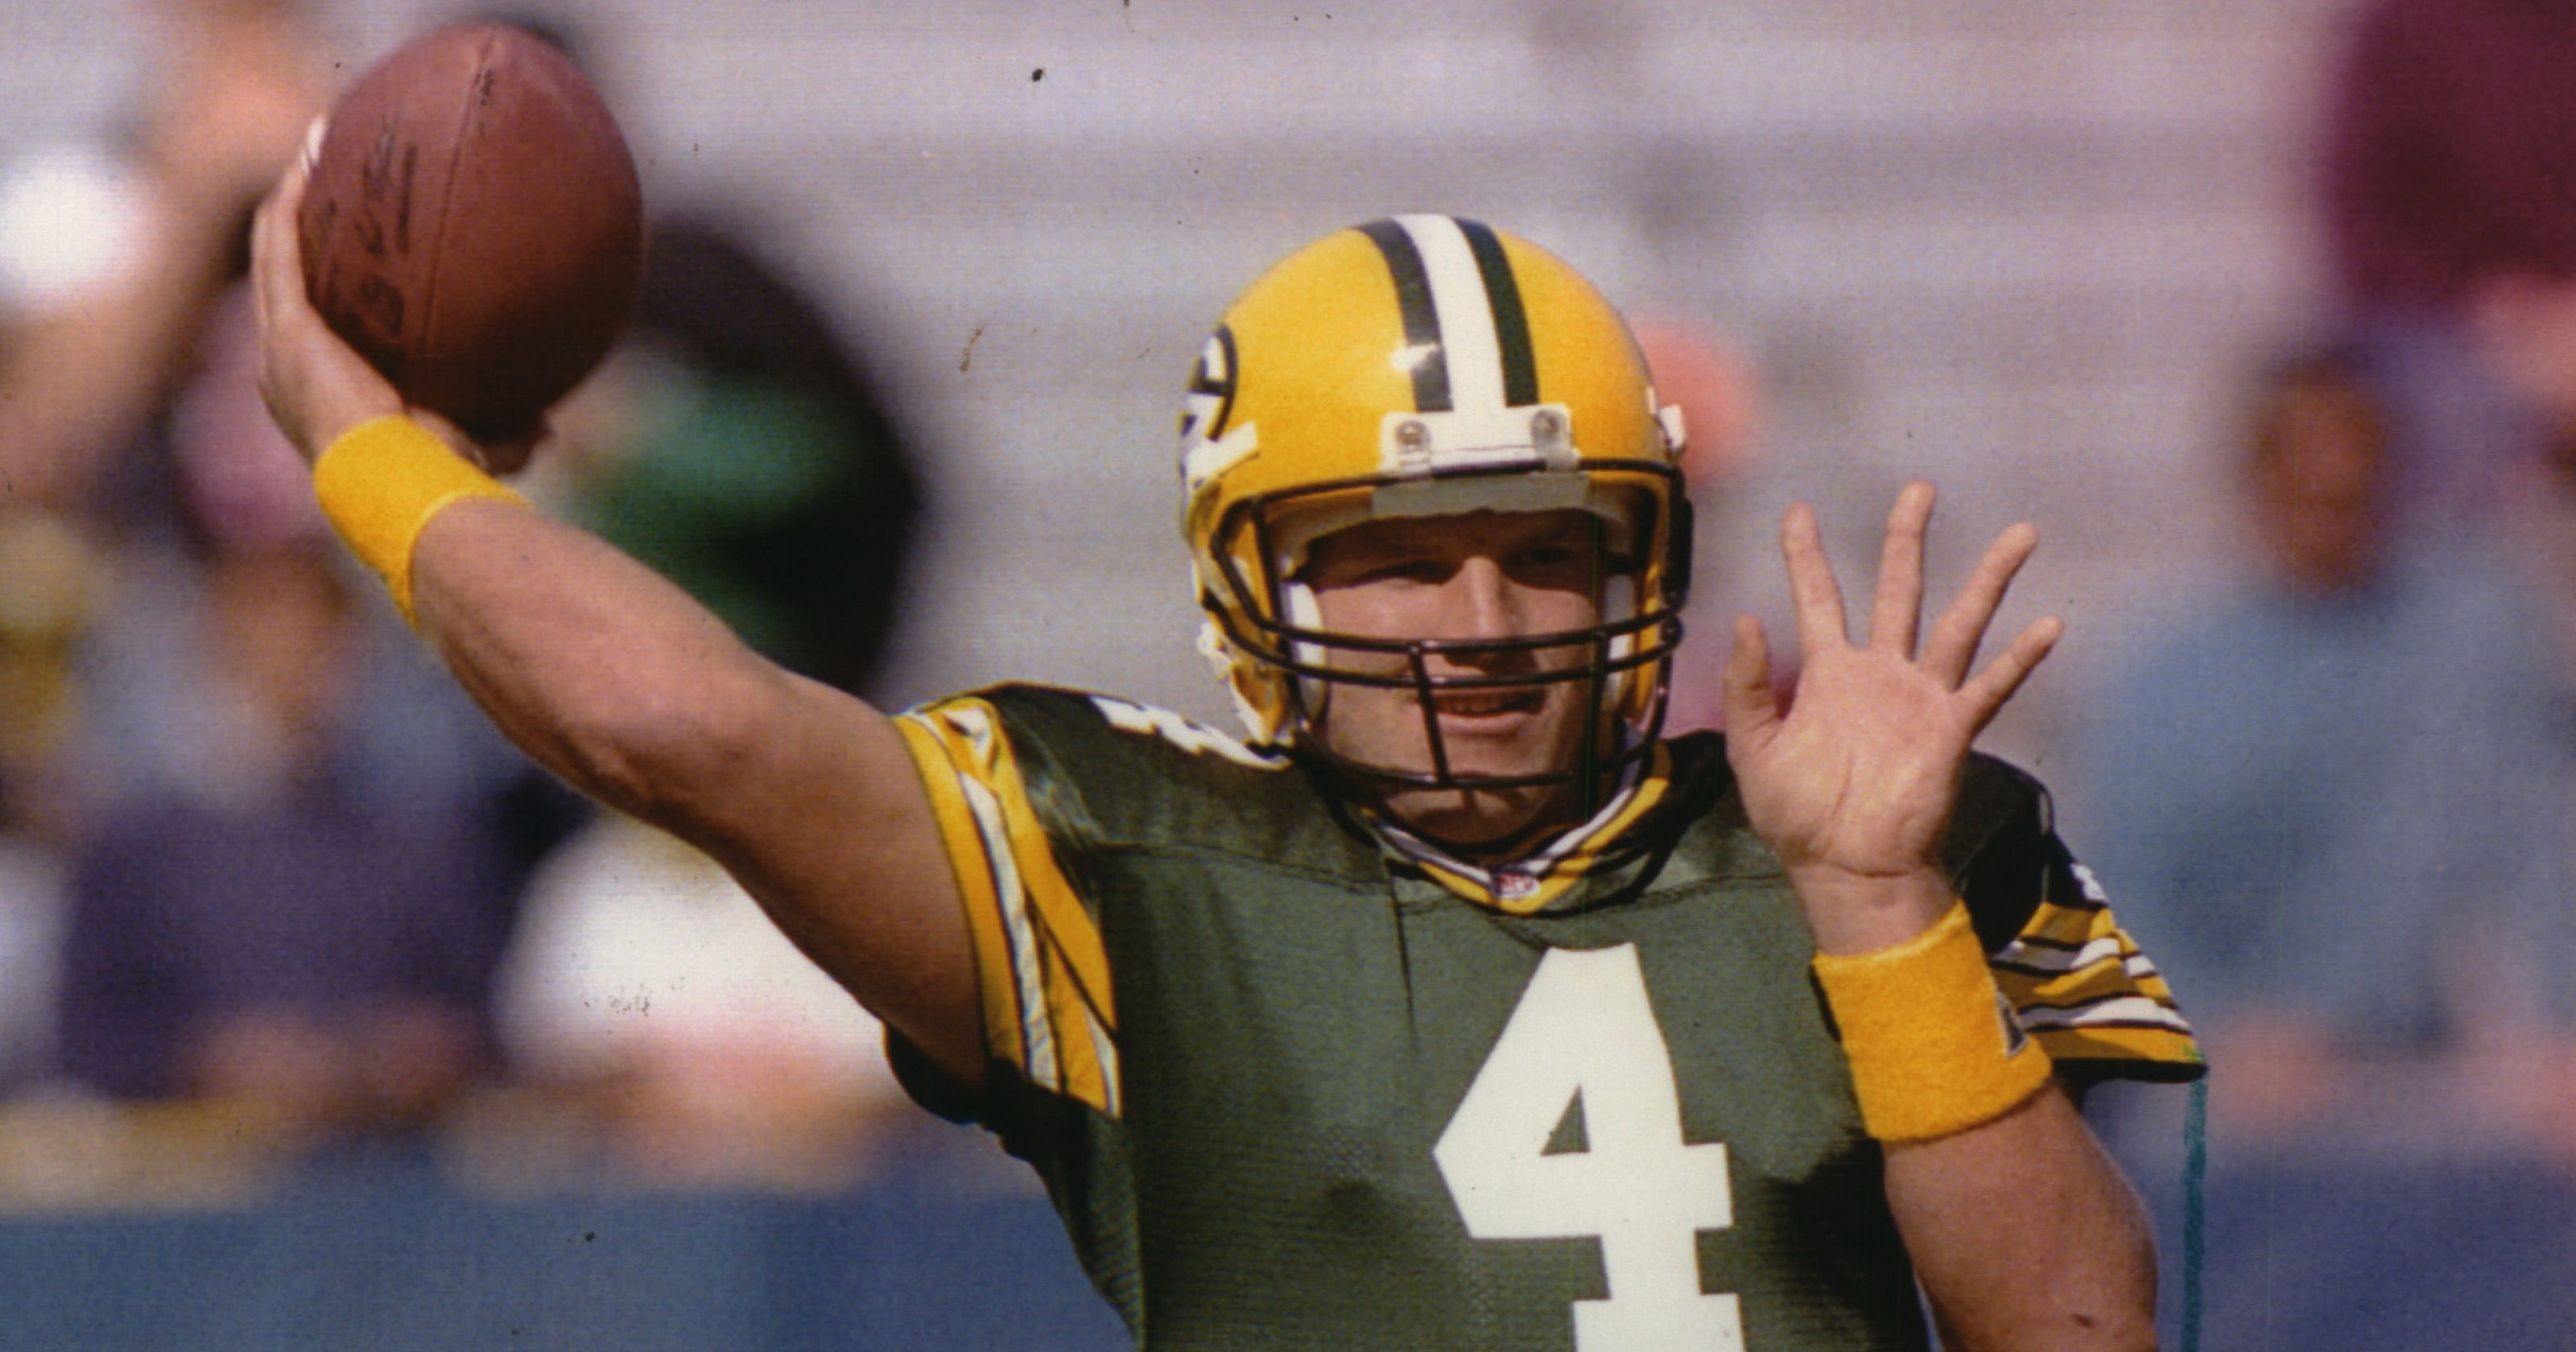 36a8bb3c9 Old School Packers: A look back at Brett Favre's first training camp in GB;  trade to Jets